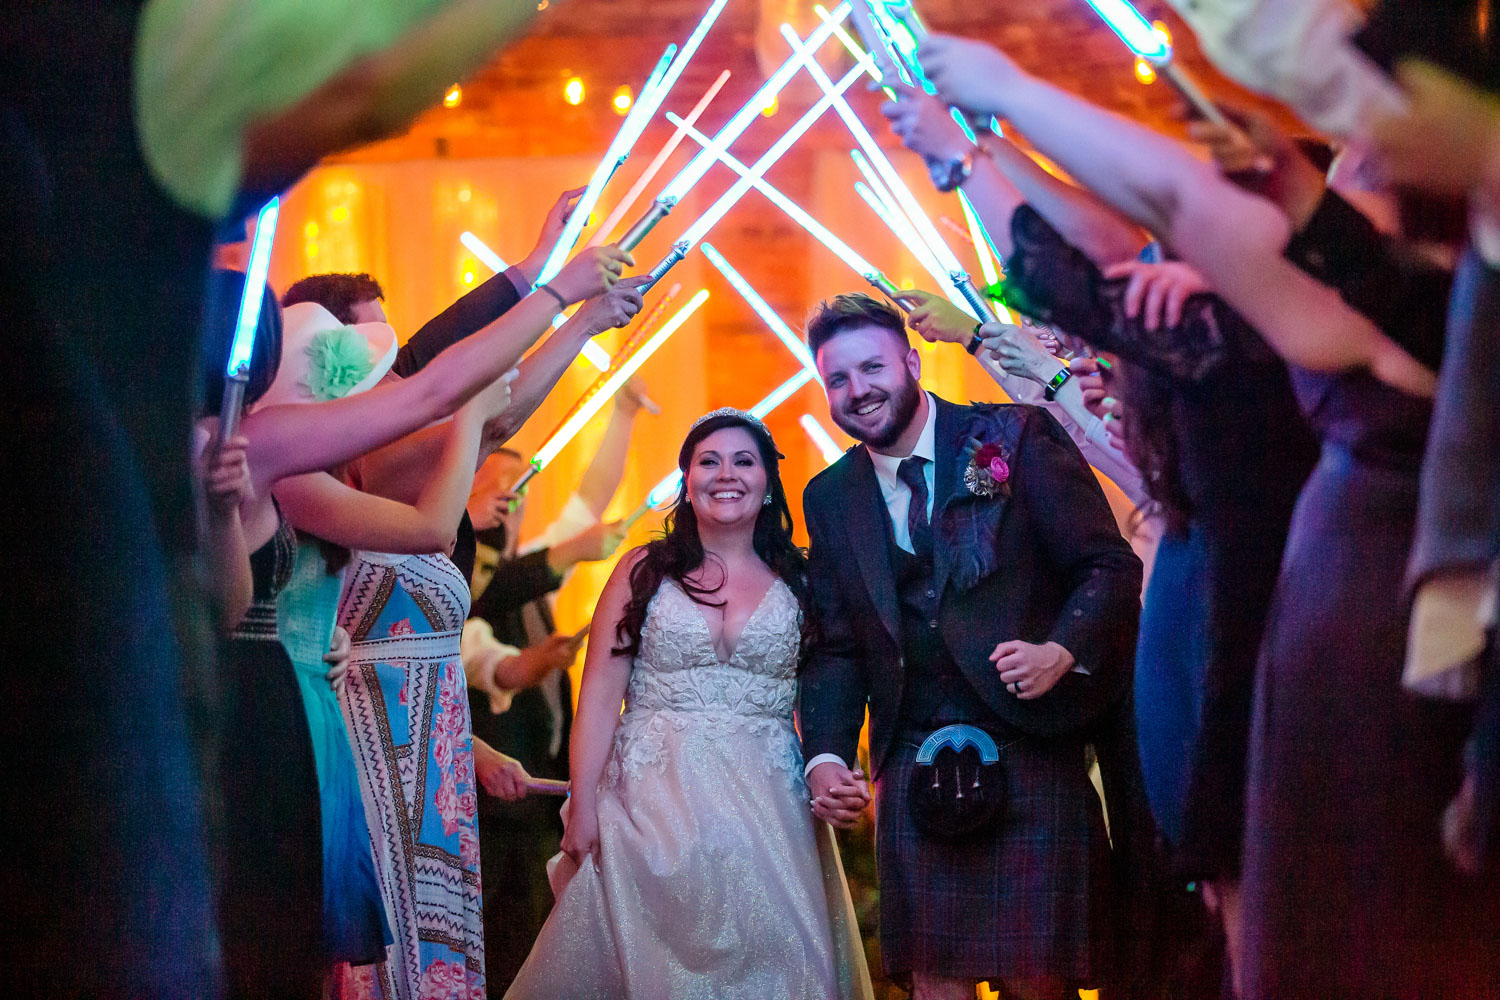 Wedding Exit with Light Sabers Star Wars Theme